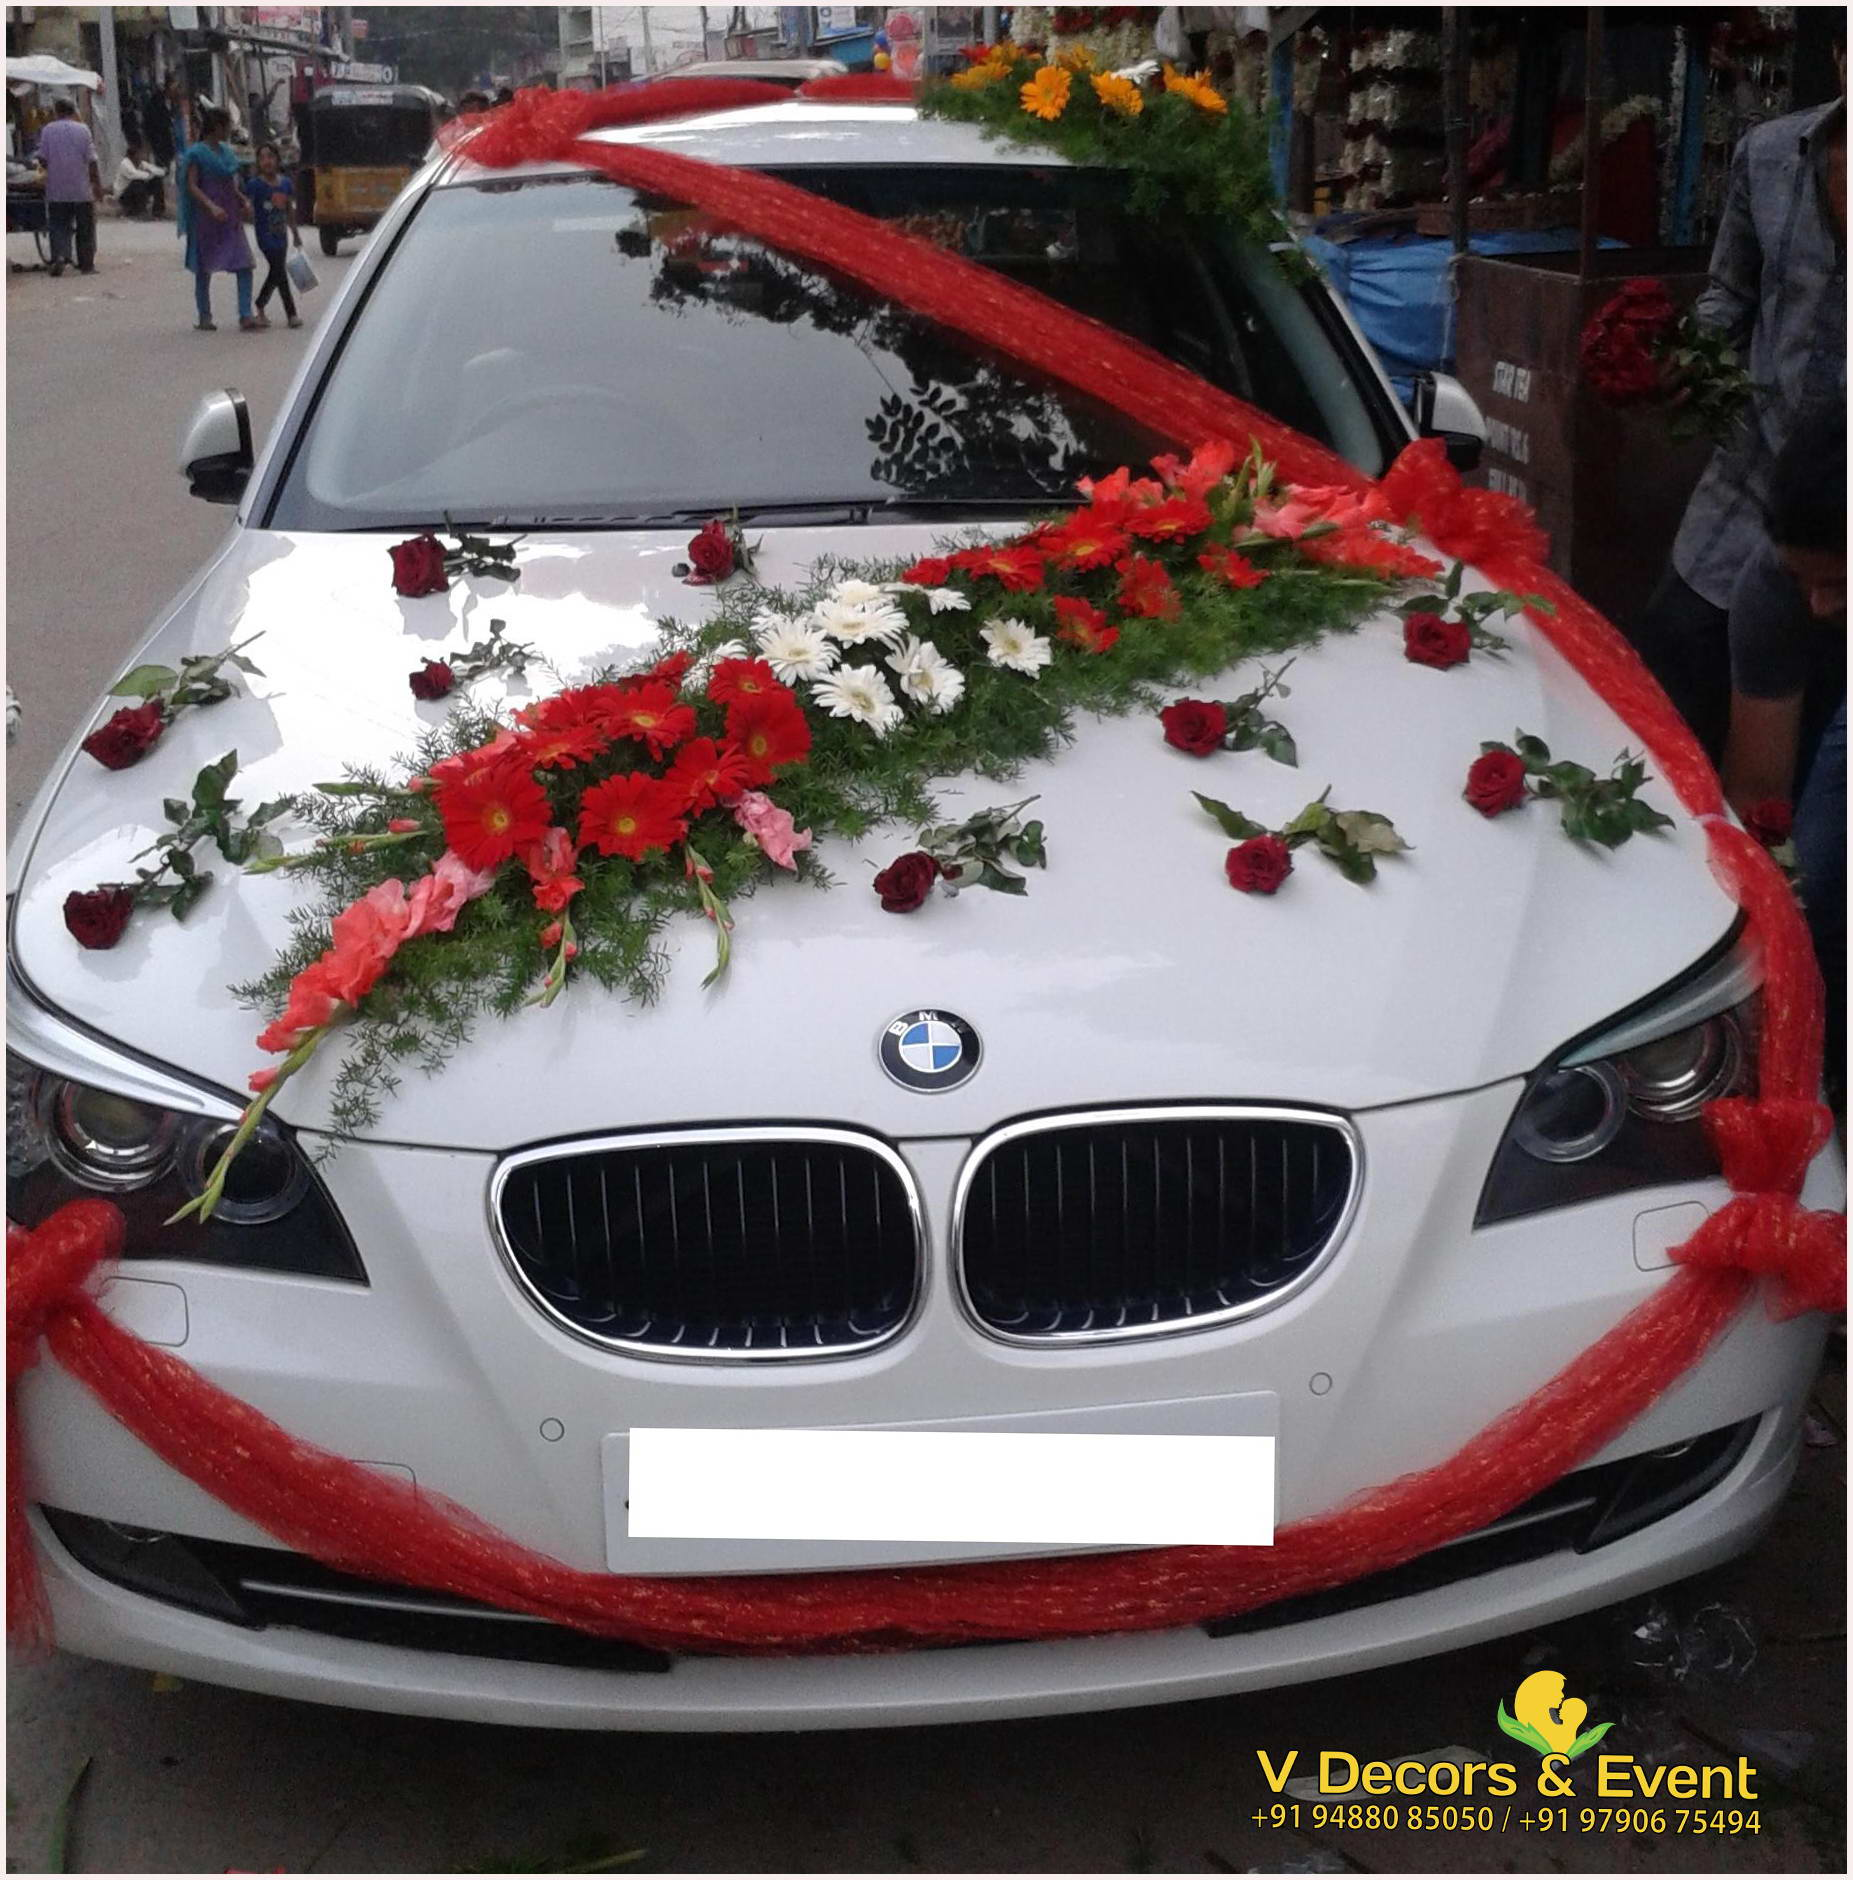 wedding card designs in pondicherry,wedding car design pondicherry